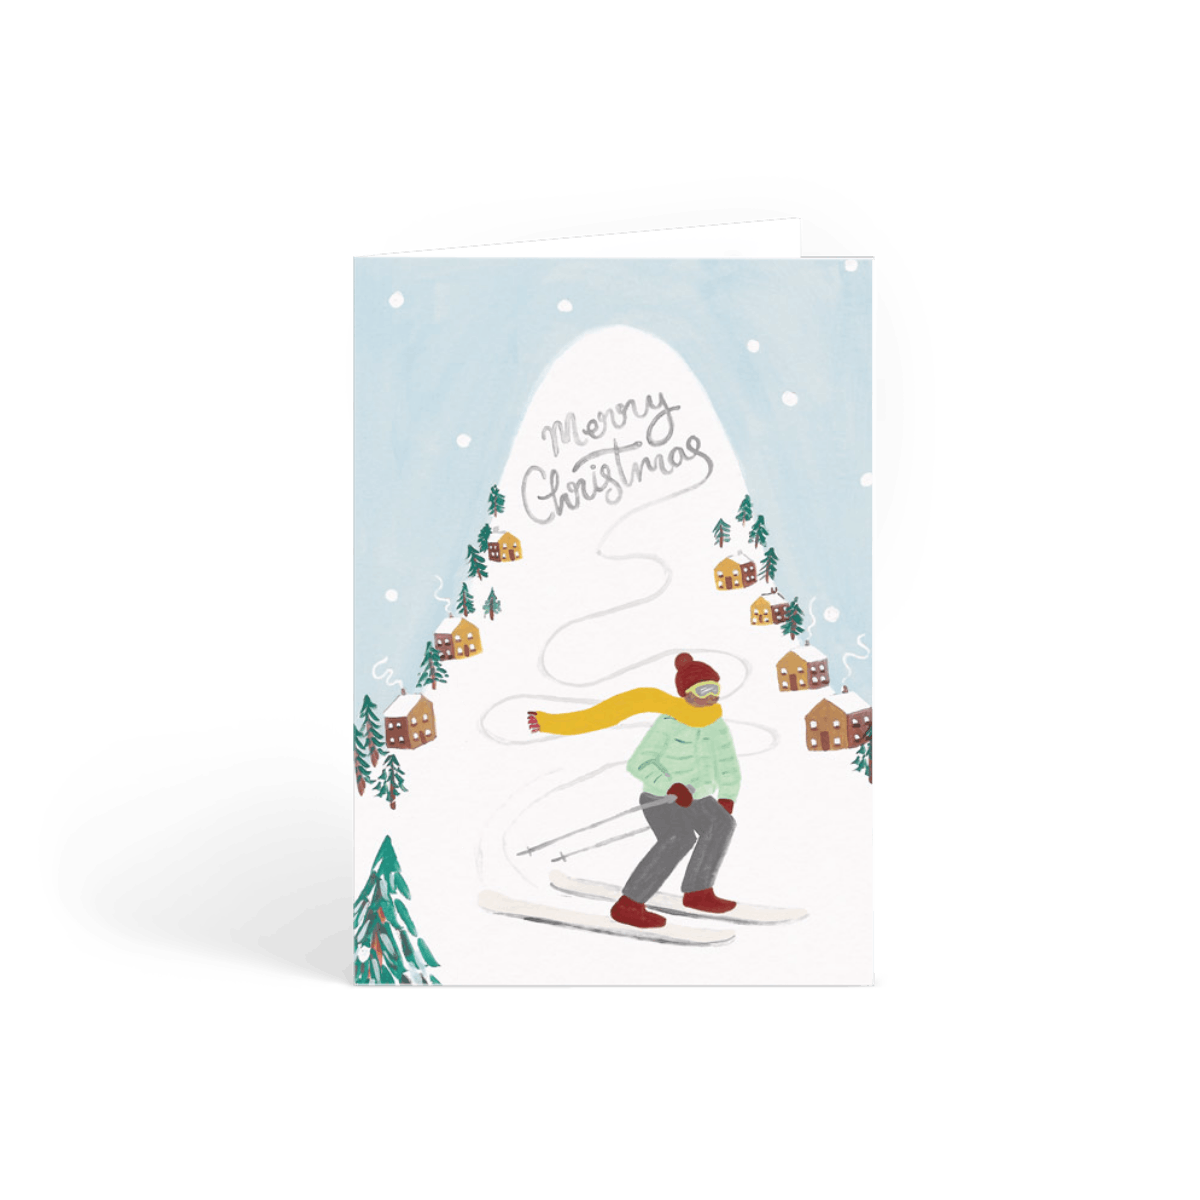 Https%3a%2f%2fwww.papier.com%2fproduct image%2f25384%2f2%2fchristmas skier 6336 avant 1499685304.png?ixlib=rb 1.1